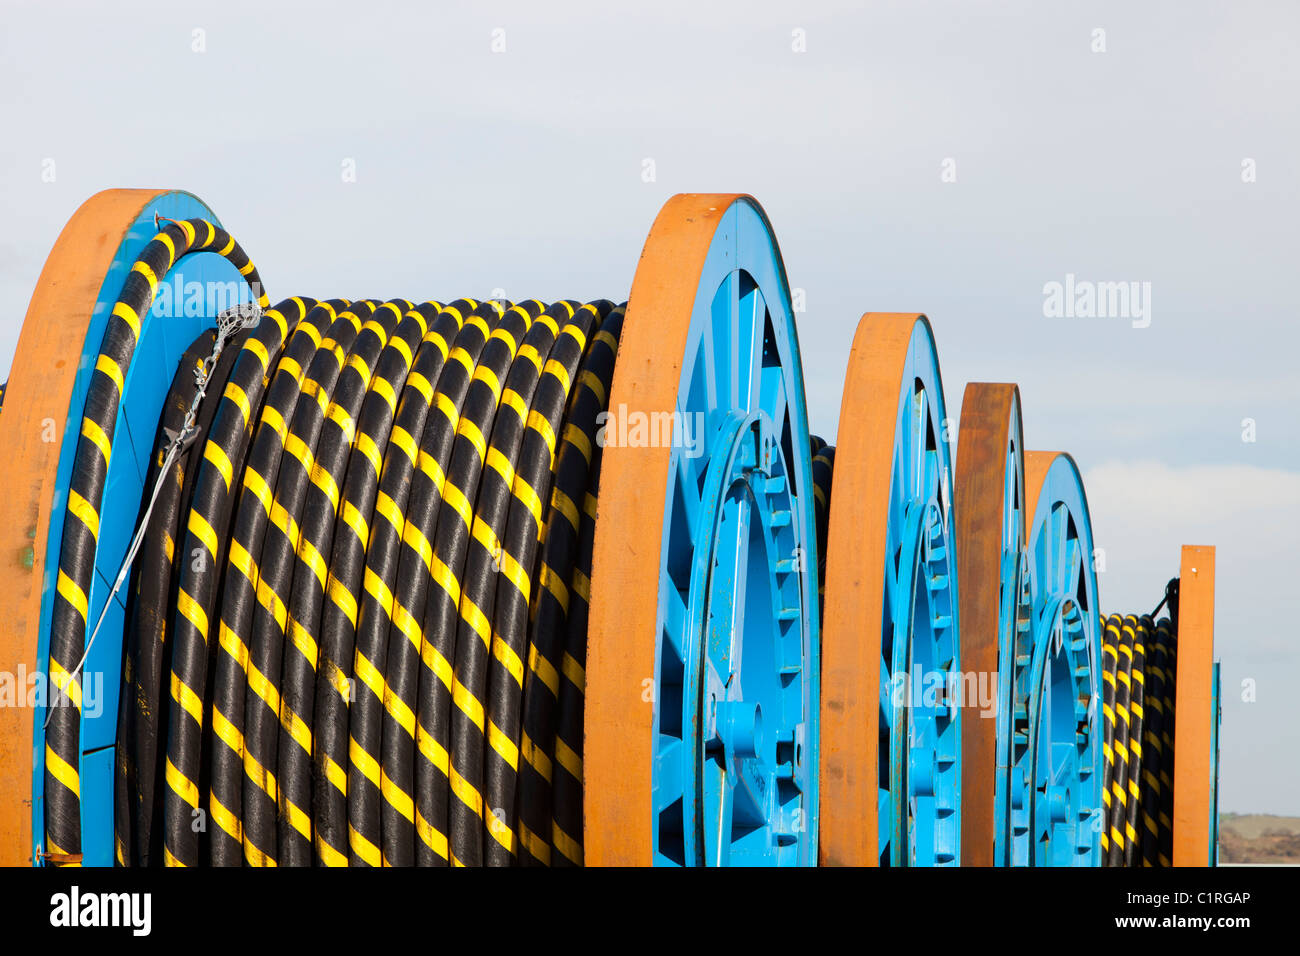 Undersea electric cabling on the dockside in Barrow in Furness, Cumbria, destined for the Walney offshore wind farm. - Stock Image